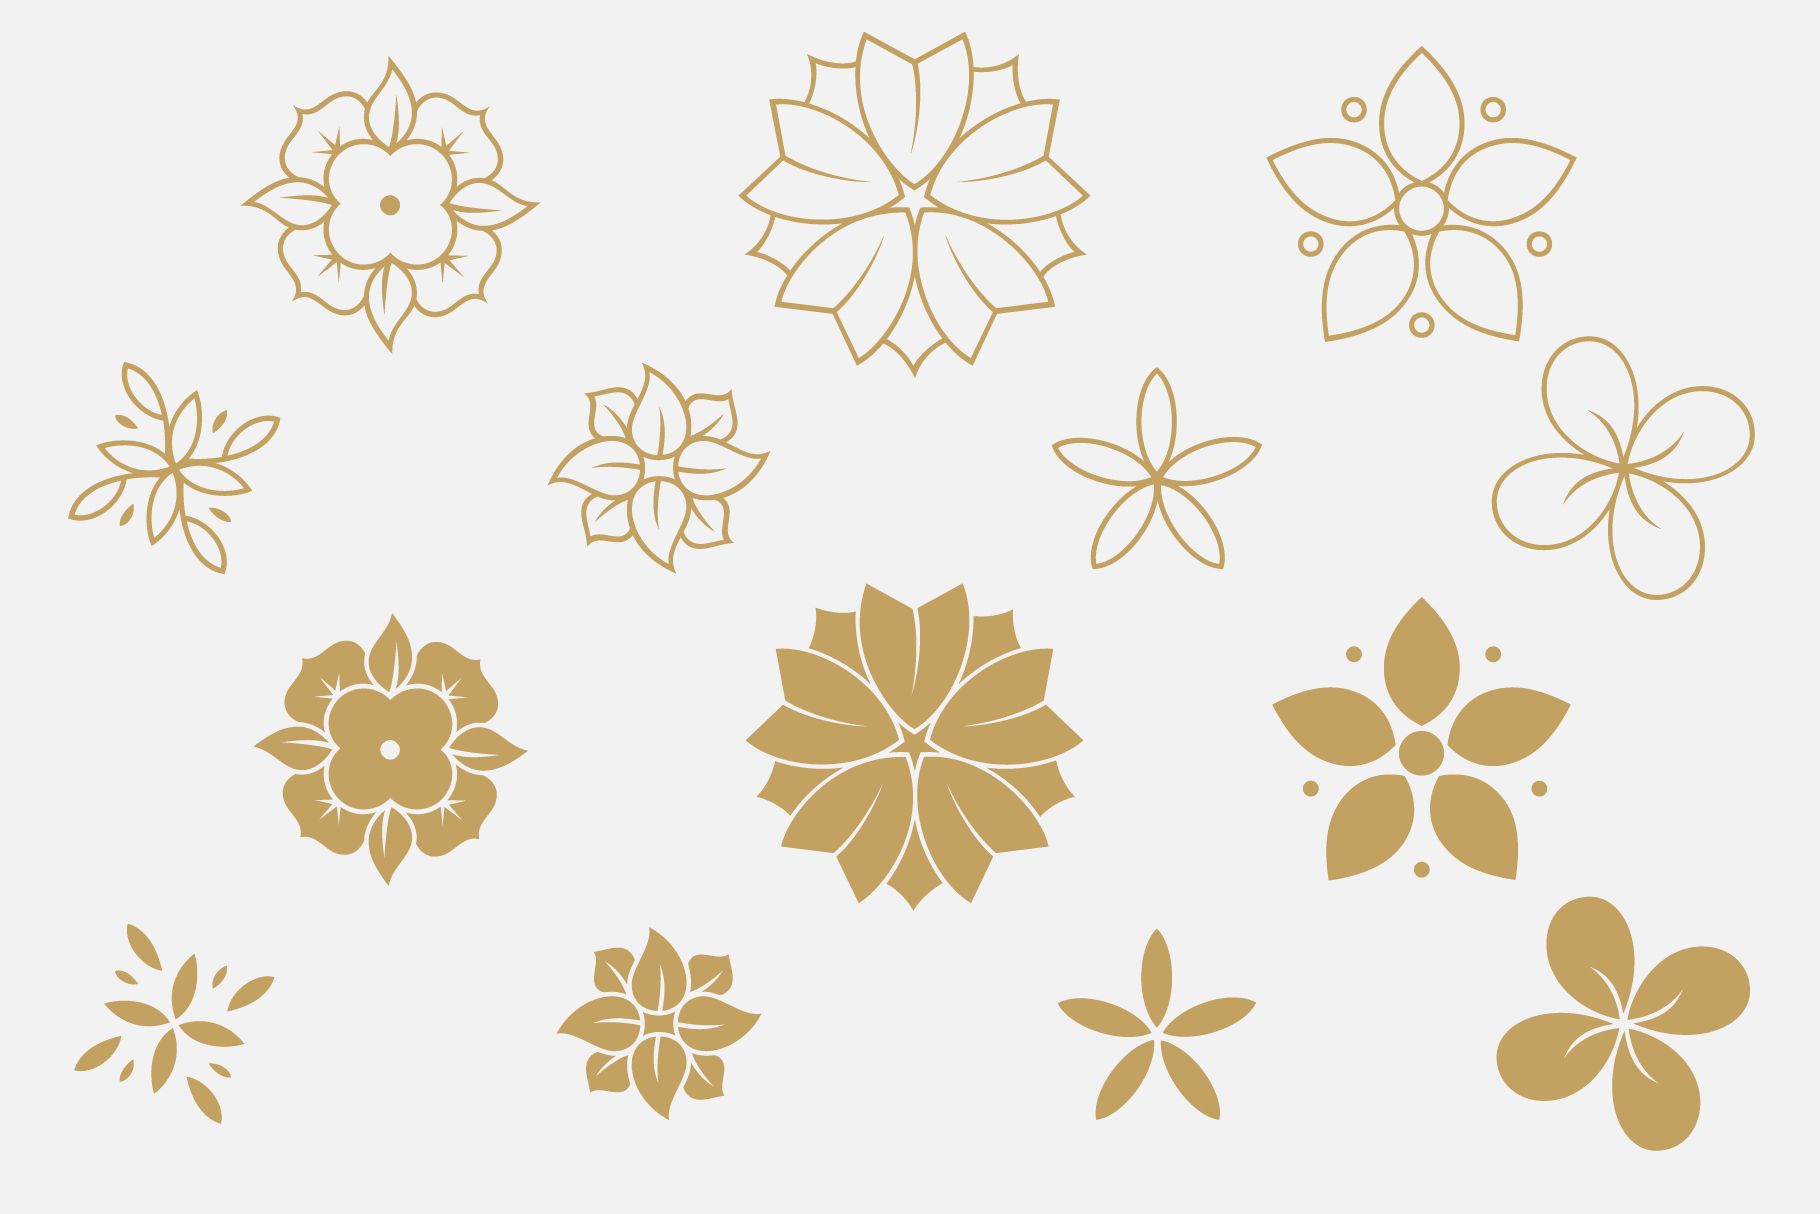 7 Flowers and Floral Patterns Graphic By Roland Hüse Image 3